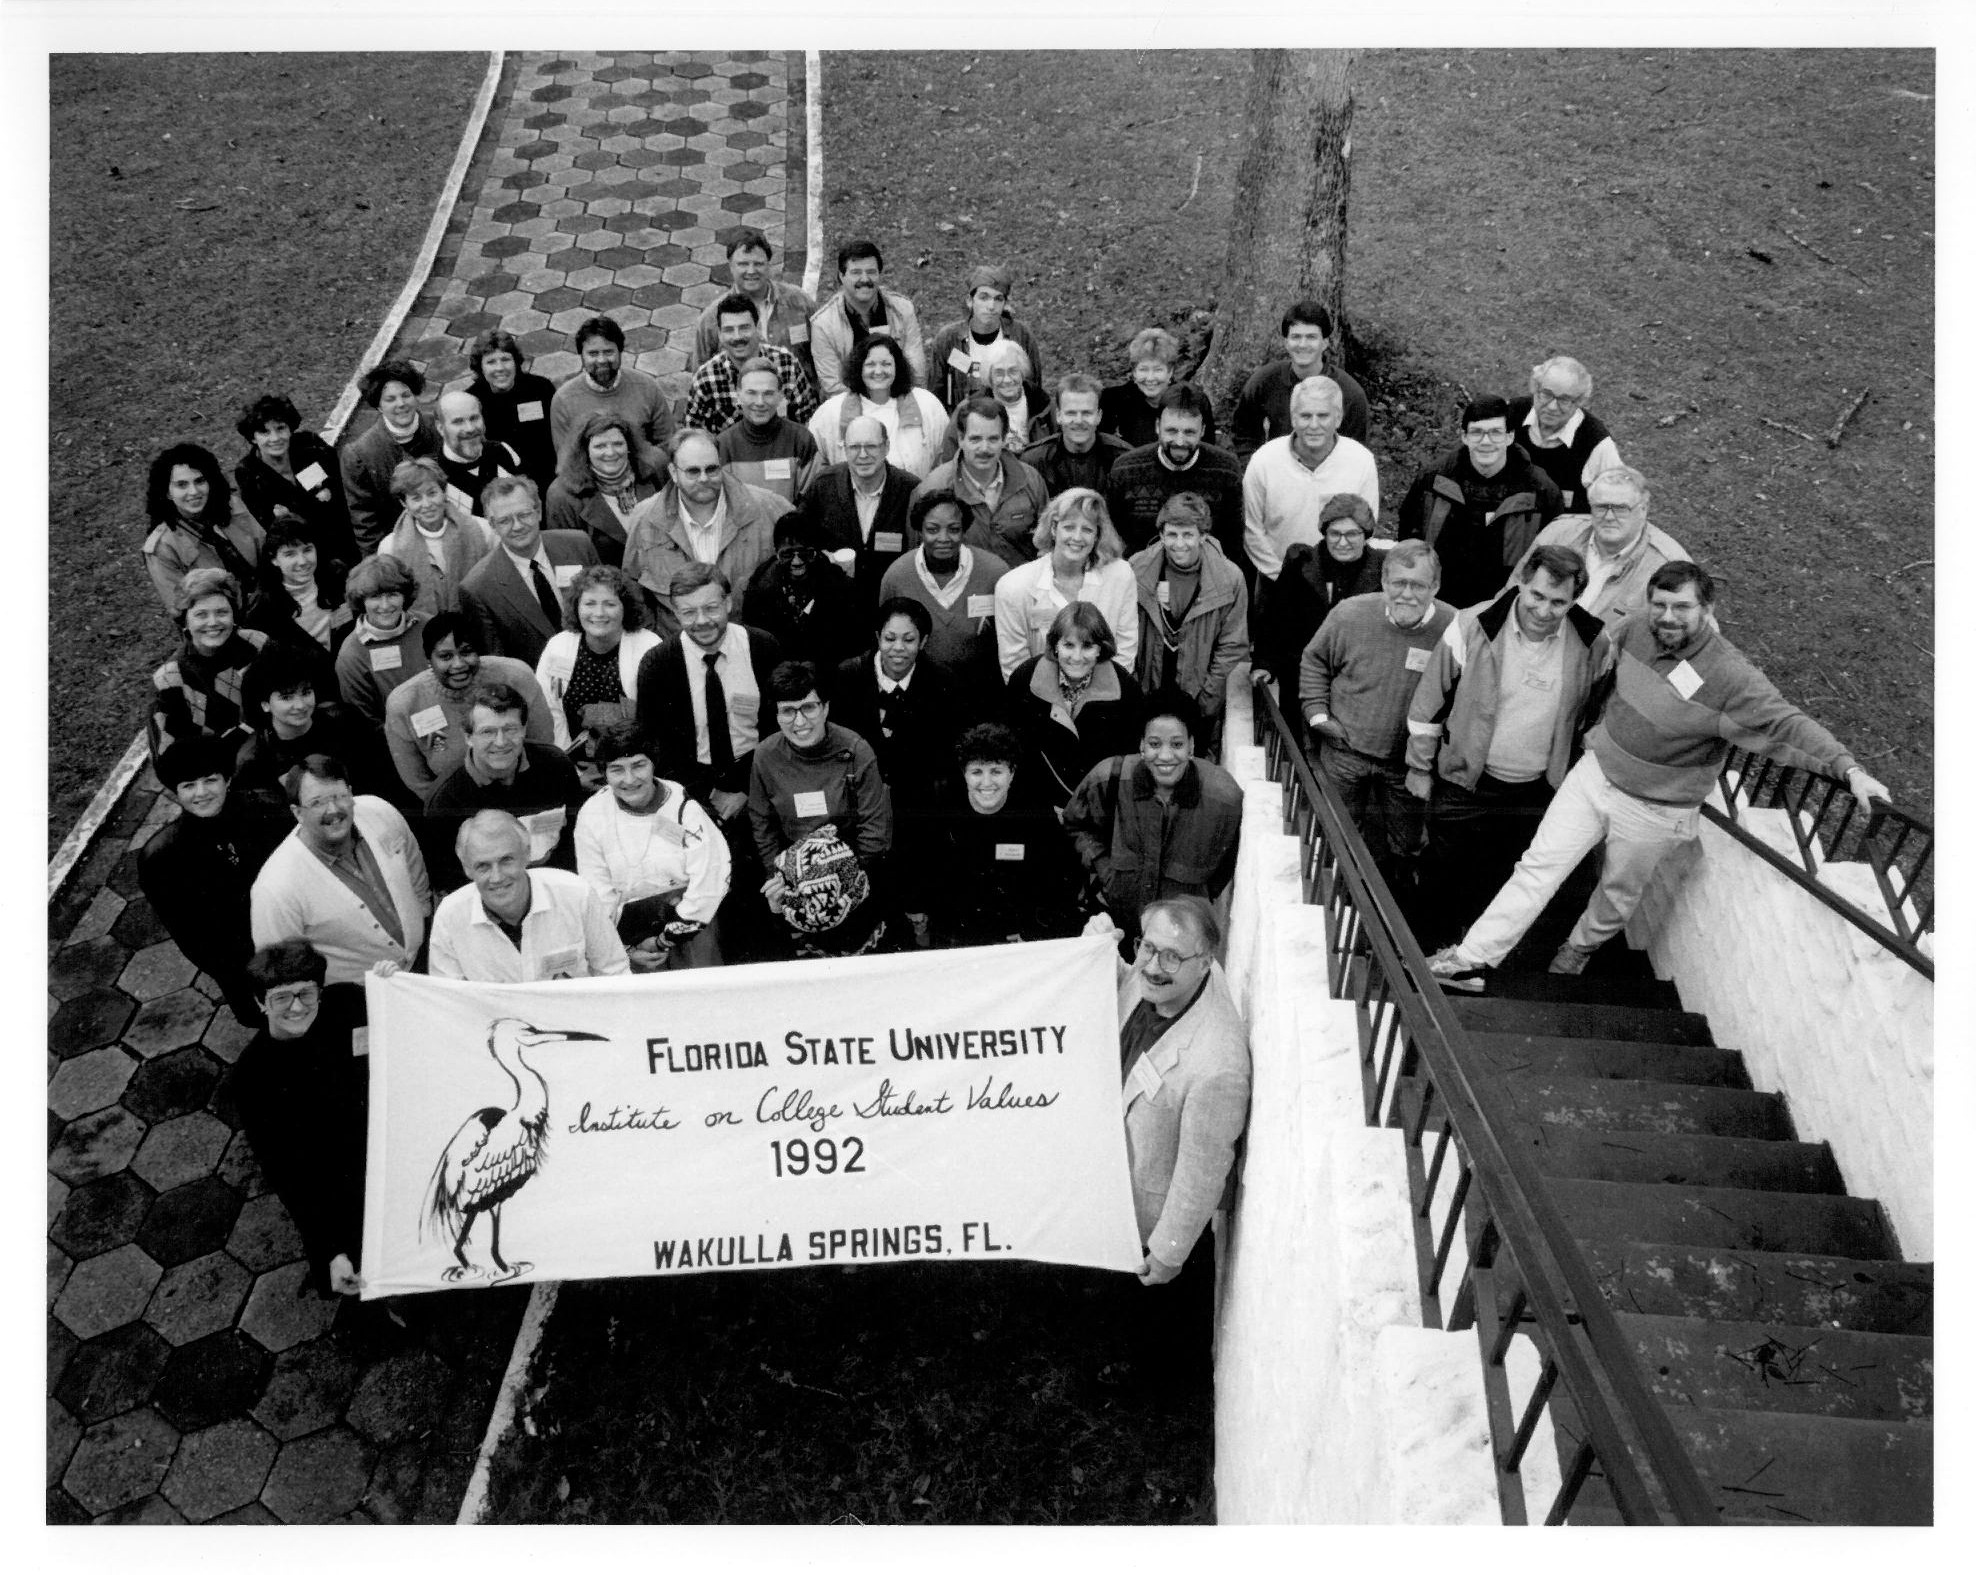 Participants at the 2nd annual Institute on College Student Values in 1992 (the Institute was re-named in honor of its founder in 2010).